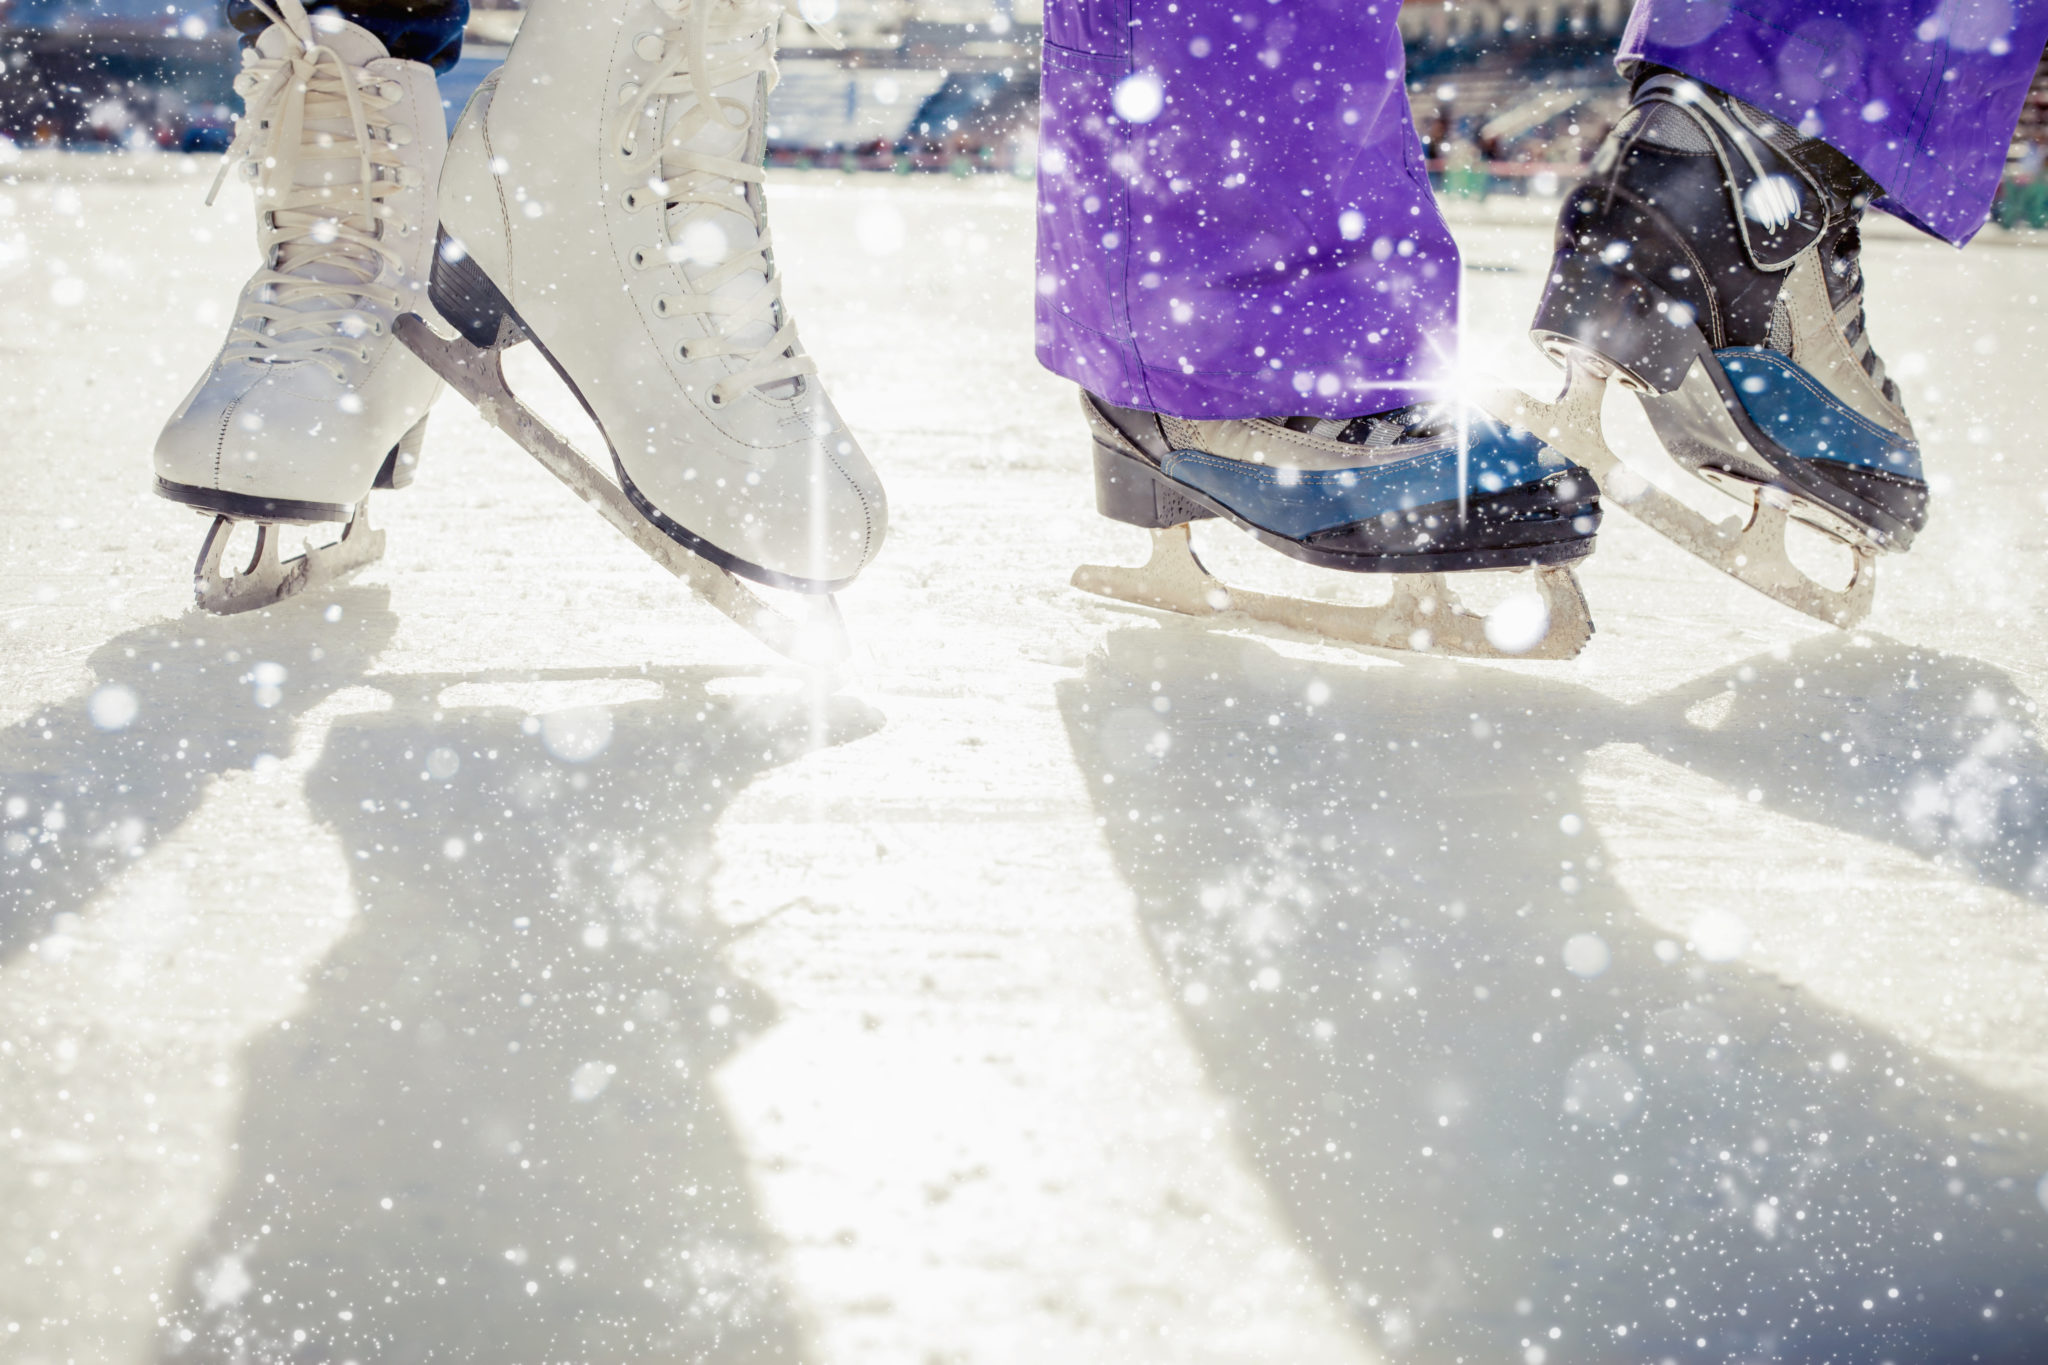 Pair is placed on ice skating. It is snowing outside